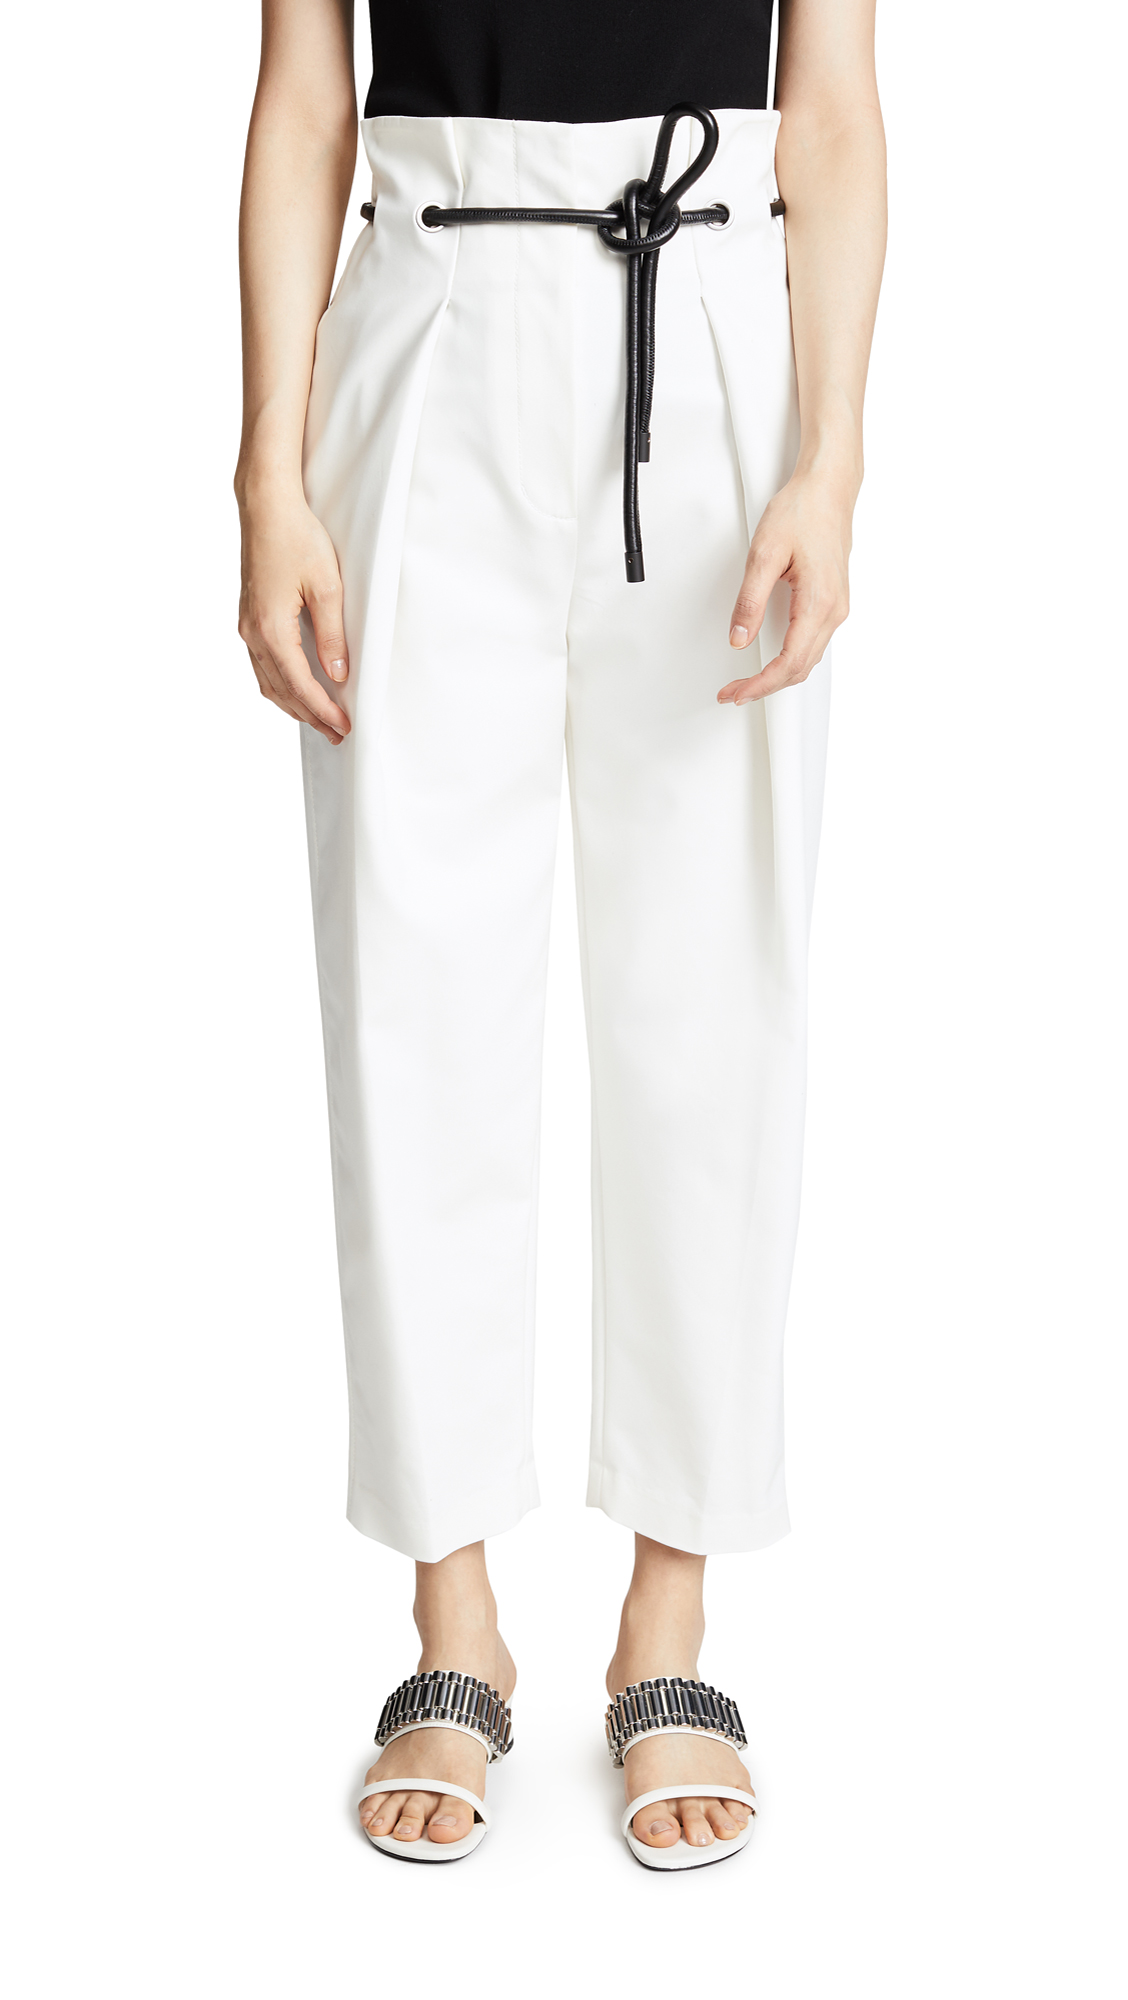 3.1 Phillip Lim Origami Pants - Antique White